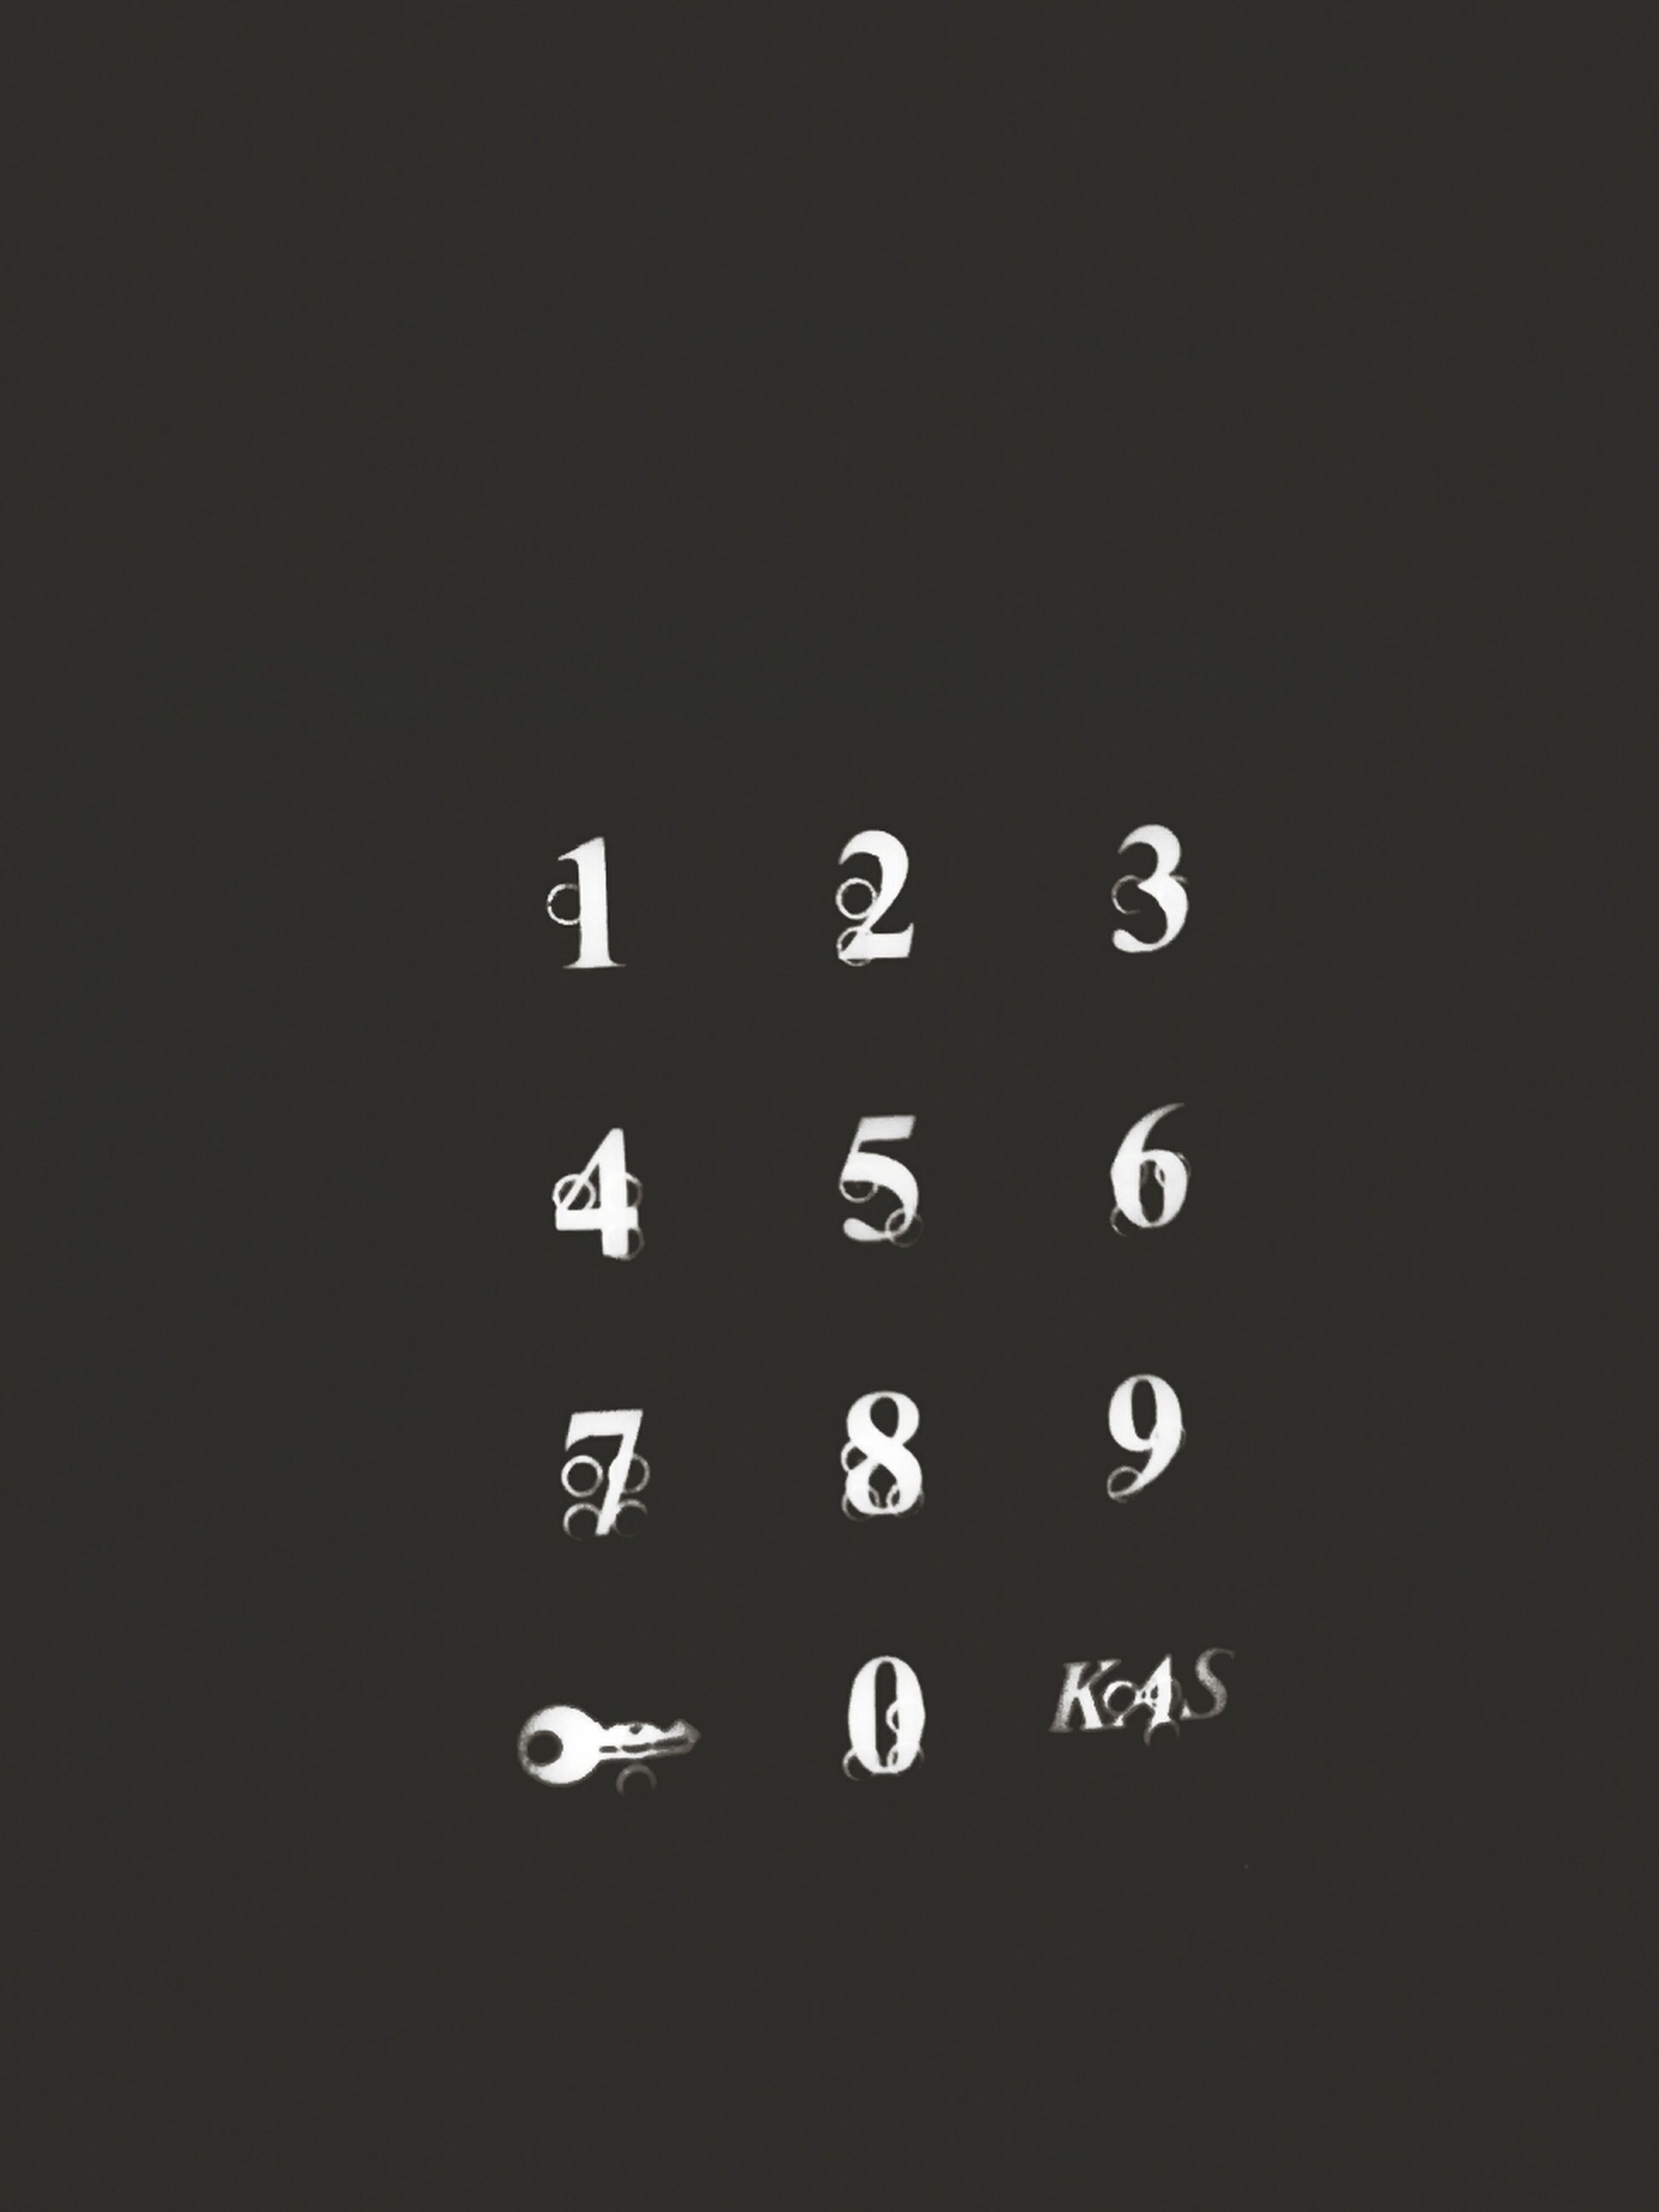 number, copy space, indoors, studio shot, communication, technology, close-up, text, illuminated, no people, control, western script, night, time, connection, black background, circle, clock, metal, electricity